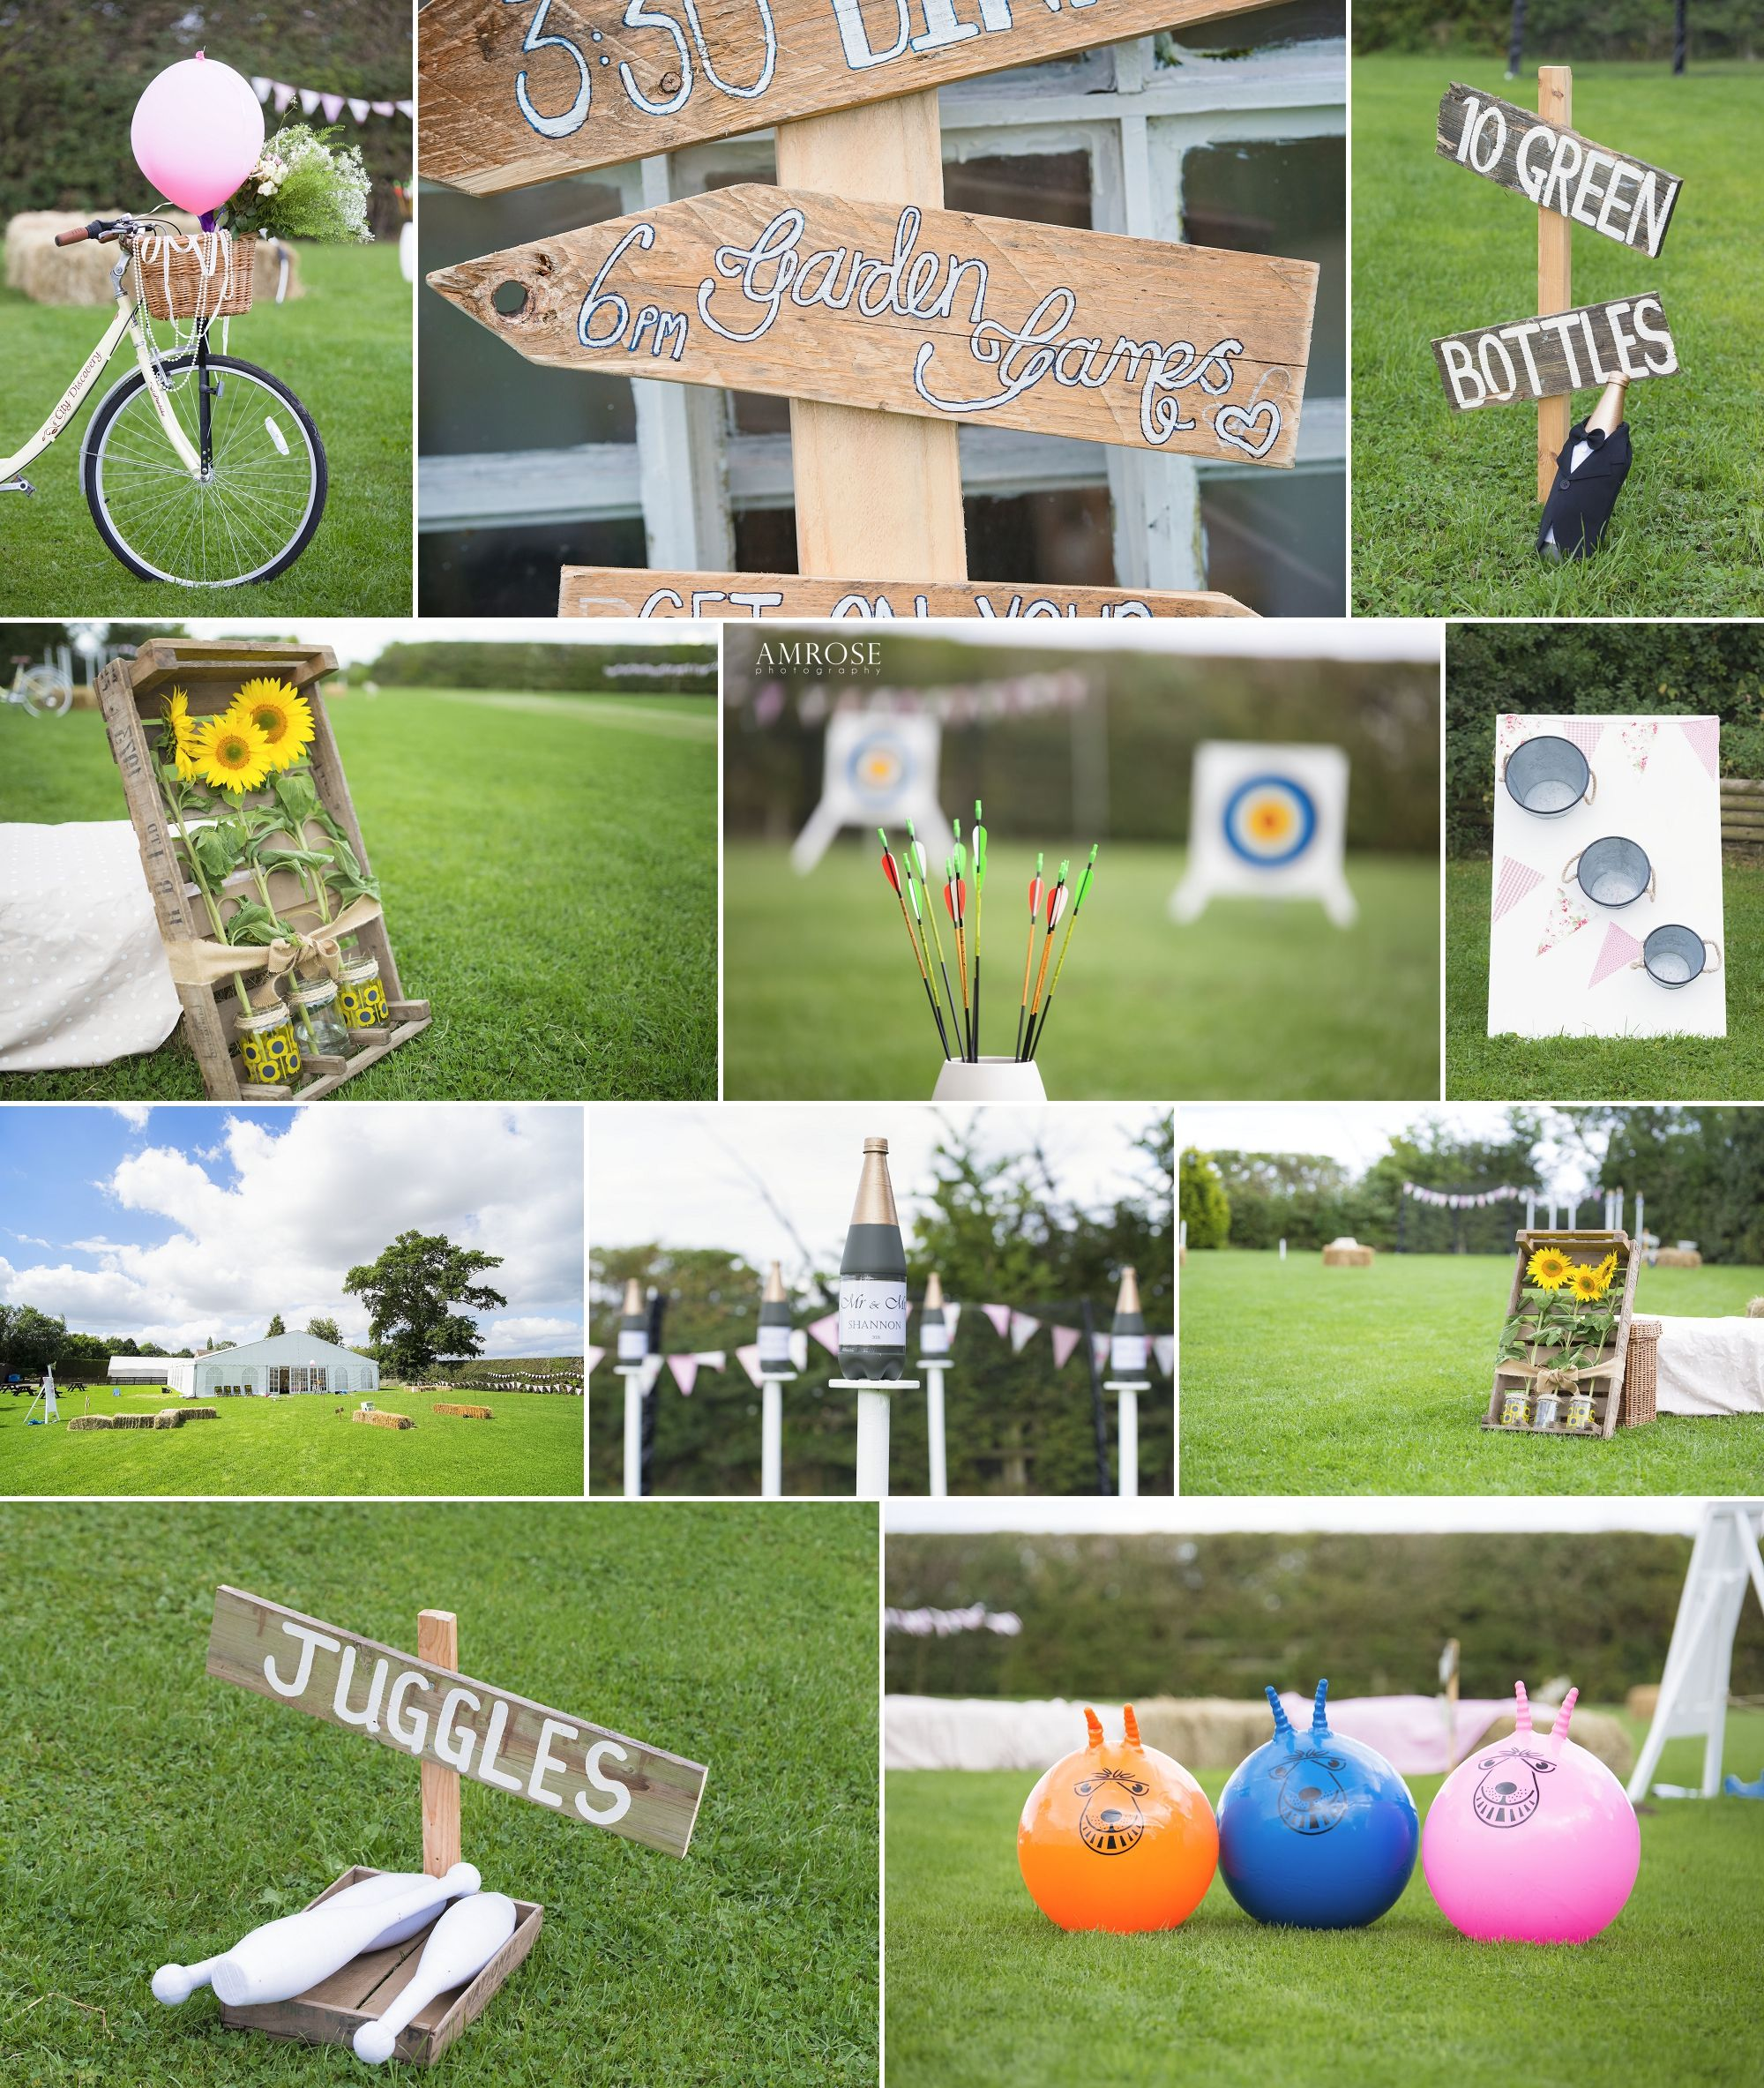 Video Game Wedding Ideas: Vintage Garden Game Ideas For Your Wedding Reception